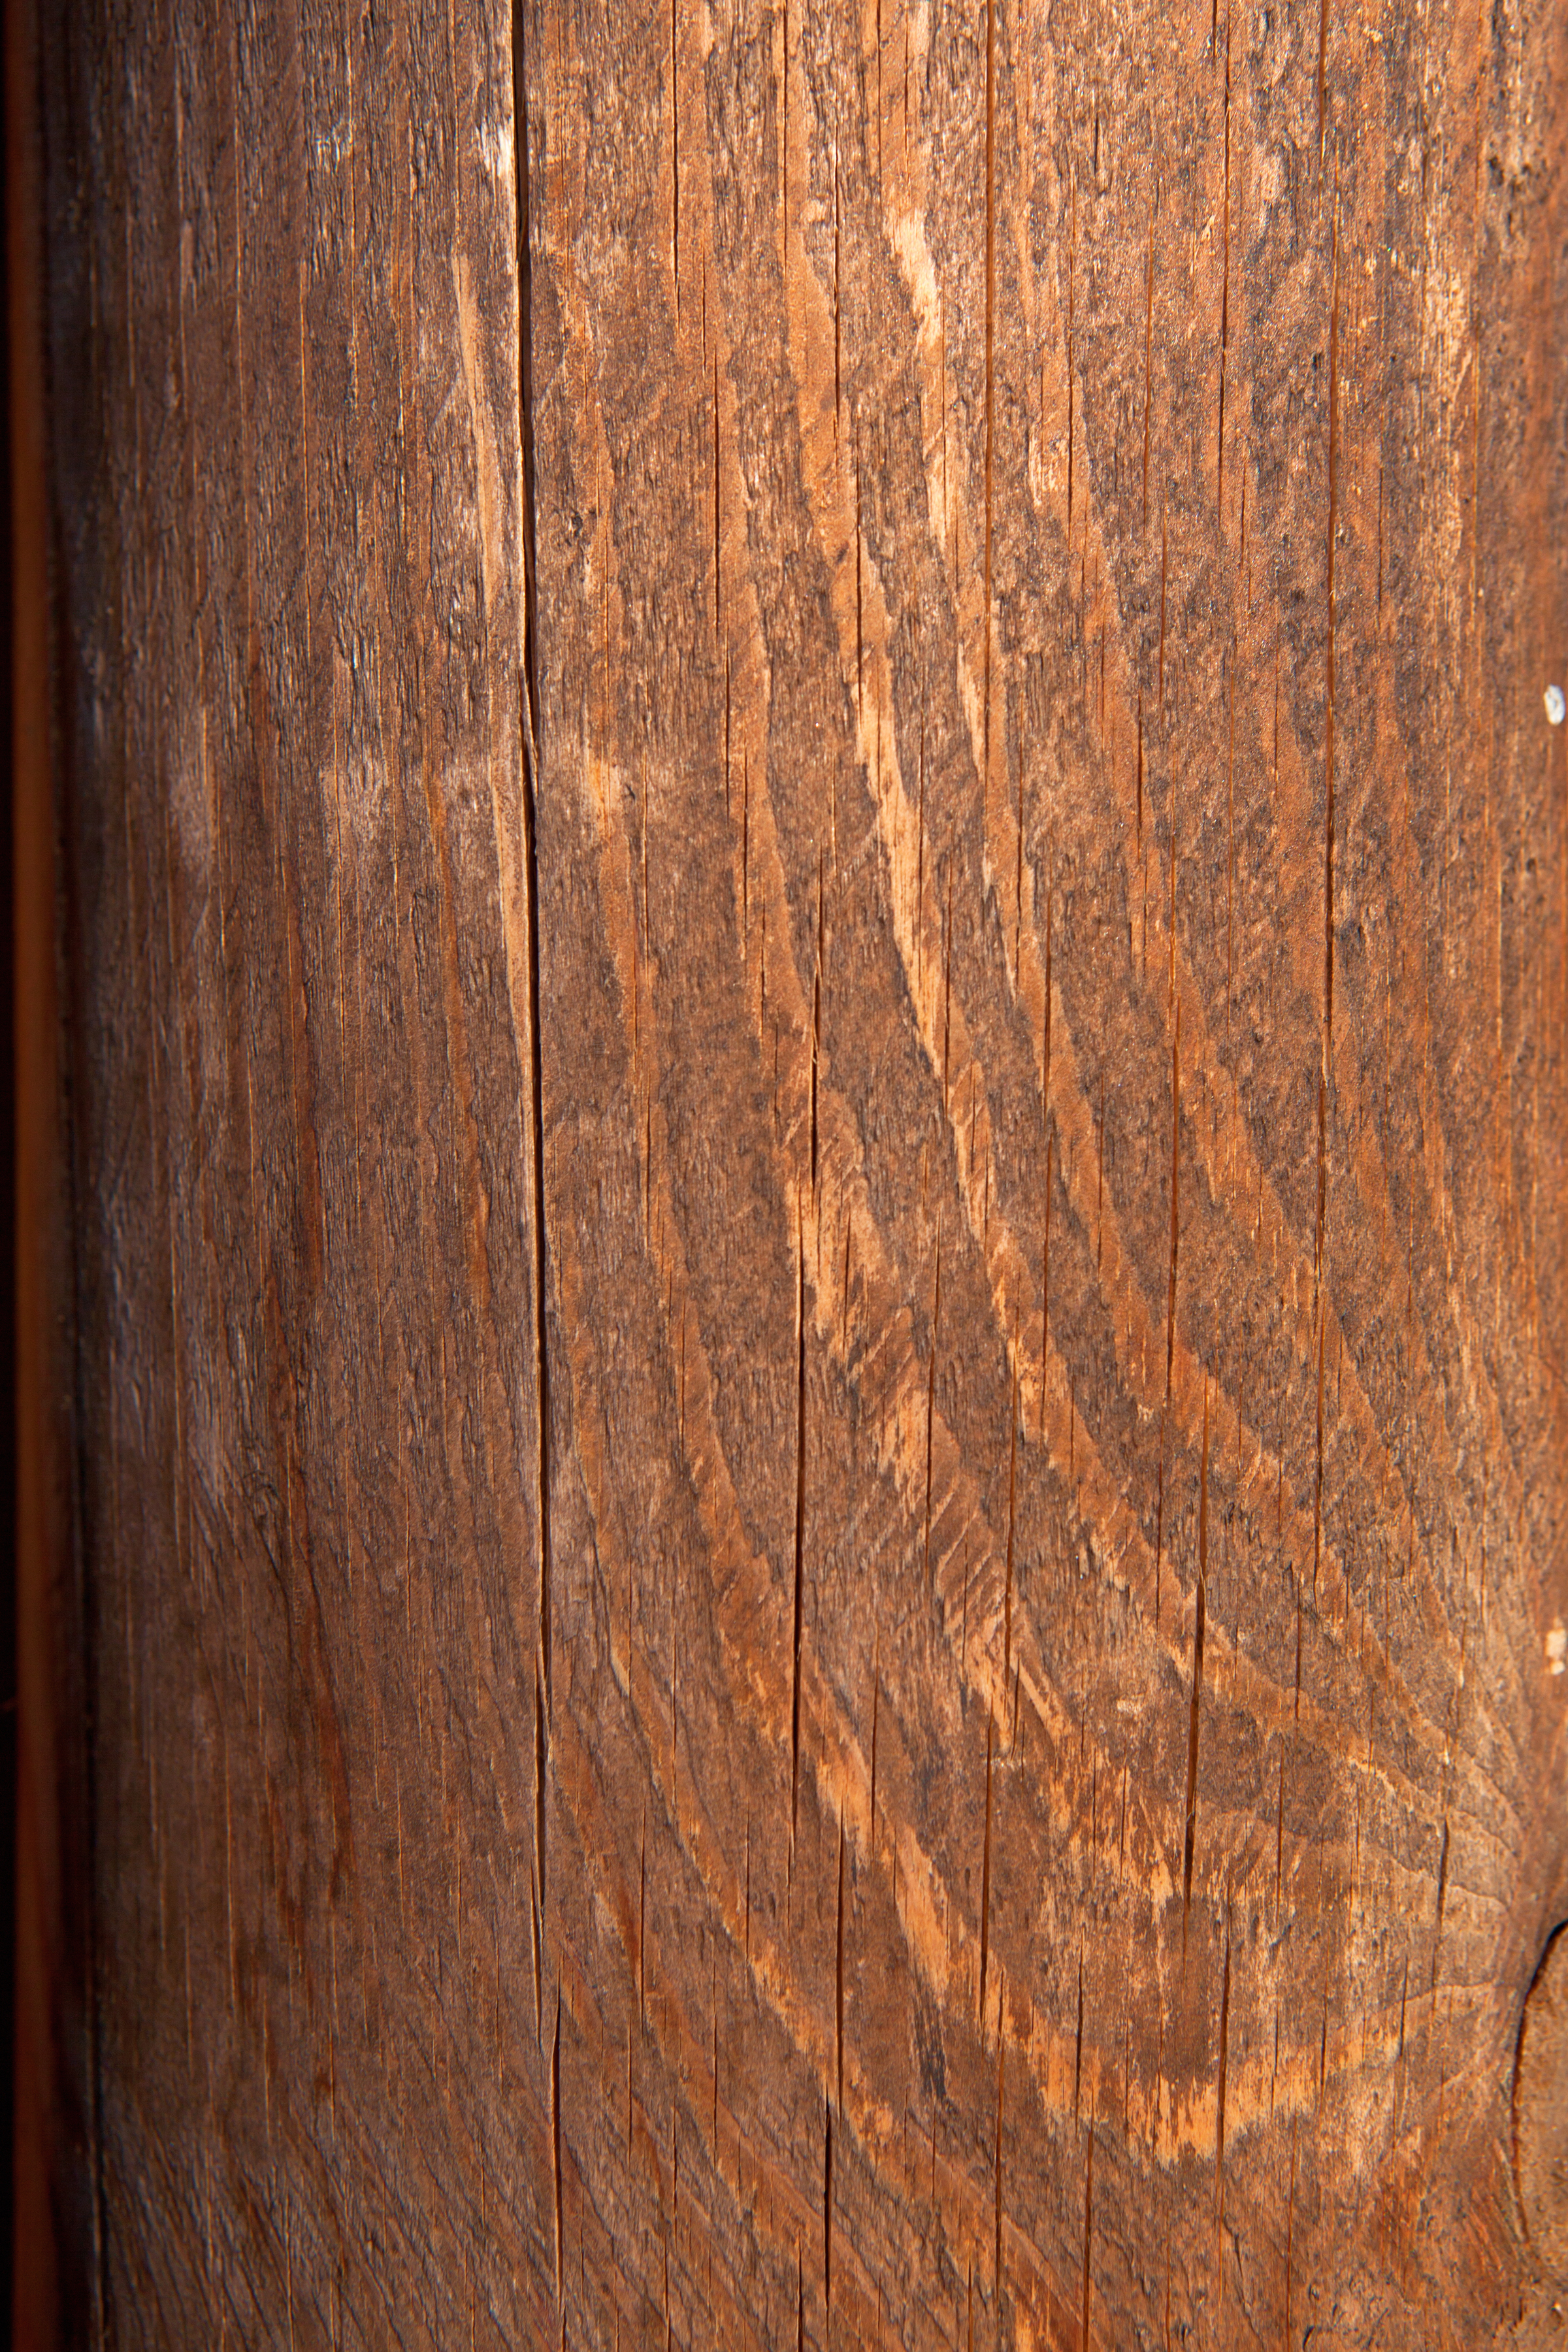 Wood background, Textured, Texture, Surface, Wall, HQ Photo